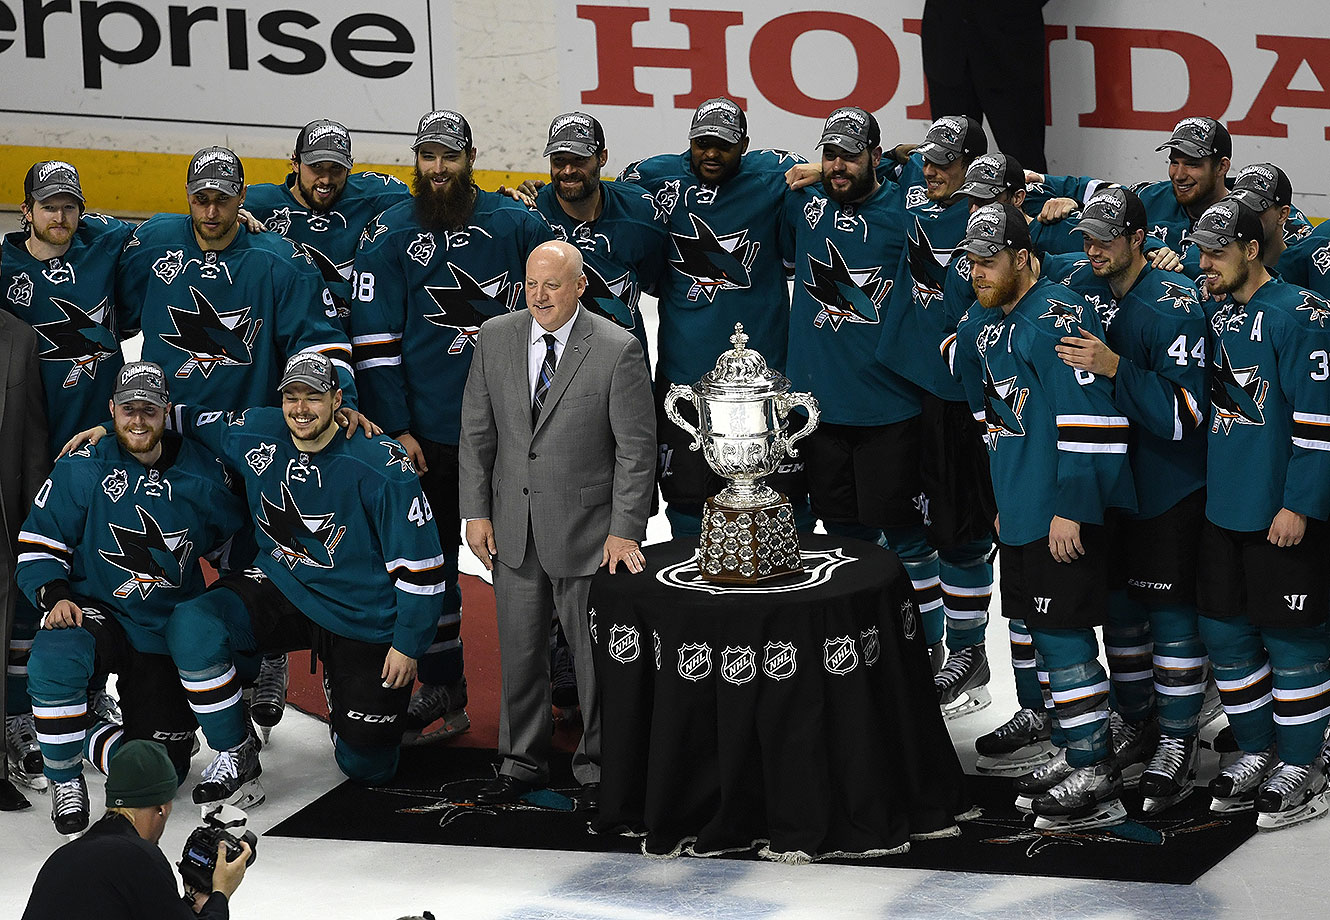 Deputy Commissioner Bill Daly presents the Clarence S. Campbell Bowl to Joe Pavelski #8 and the San Jose Sharks after their 5-2 win over the St. Louis Blues in Game Six of the Western Conference Final during the 2016 NHL Stanley Cup Playoffs at SAP Center on May 25, 2016 in San Jose, California.